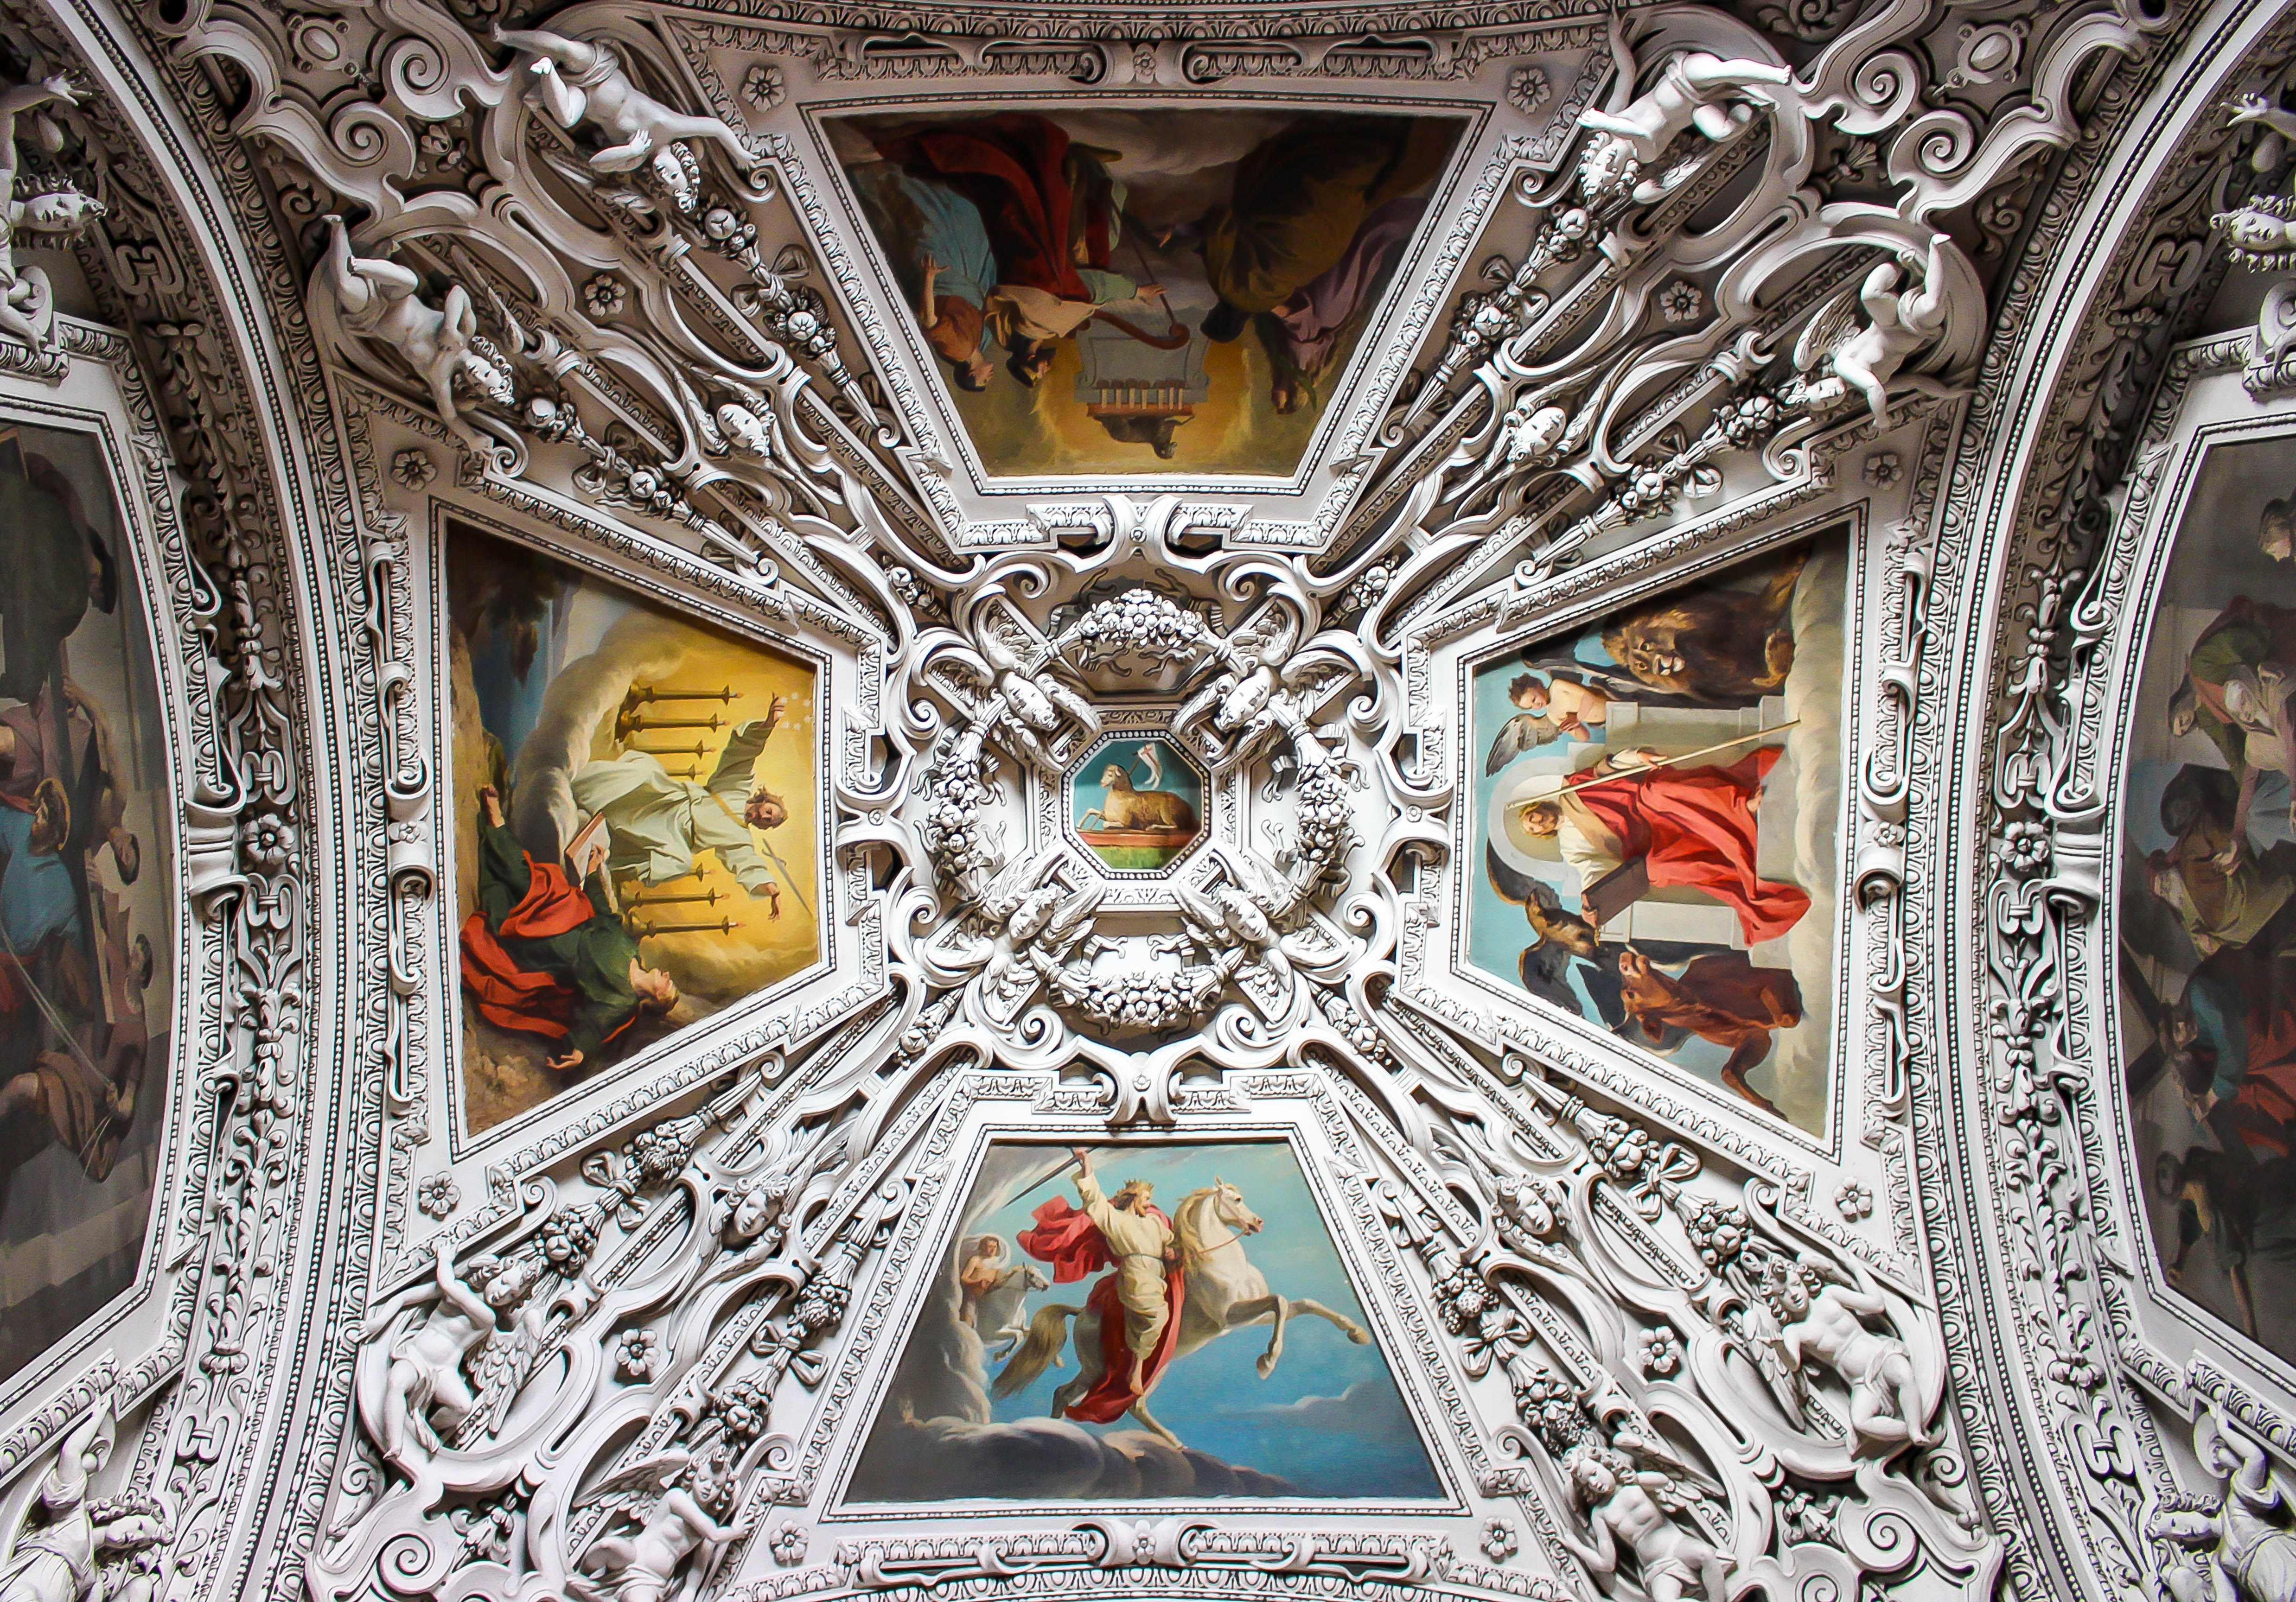 Beautiful ornate ceiling in baroque style with pattern and religious art in Salzburg